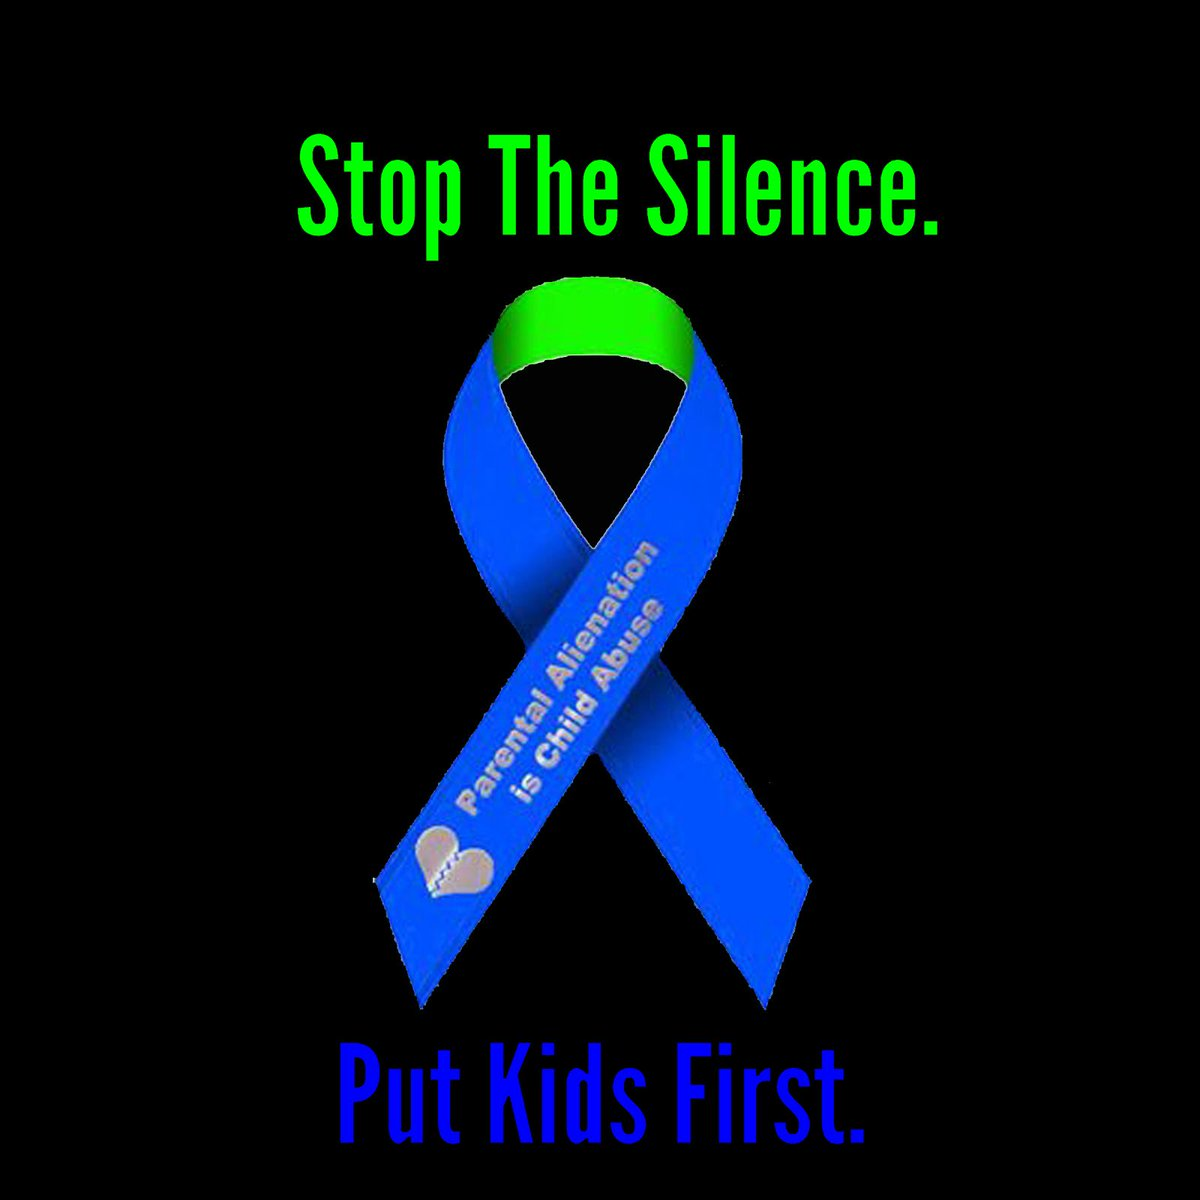 Stop the Silence on #ParentalAlienationAwarenessDay. Today pray for the #victims and the #alienators of this #crime. #pas #alienation #abuse<br>http://pic.twitter.com/Y3bzEEBNje